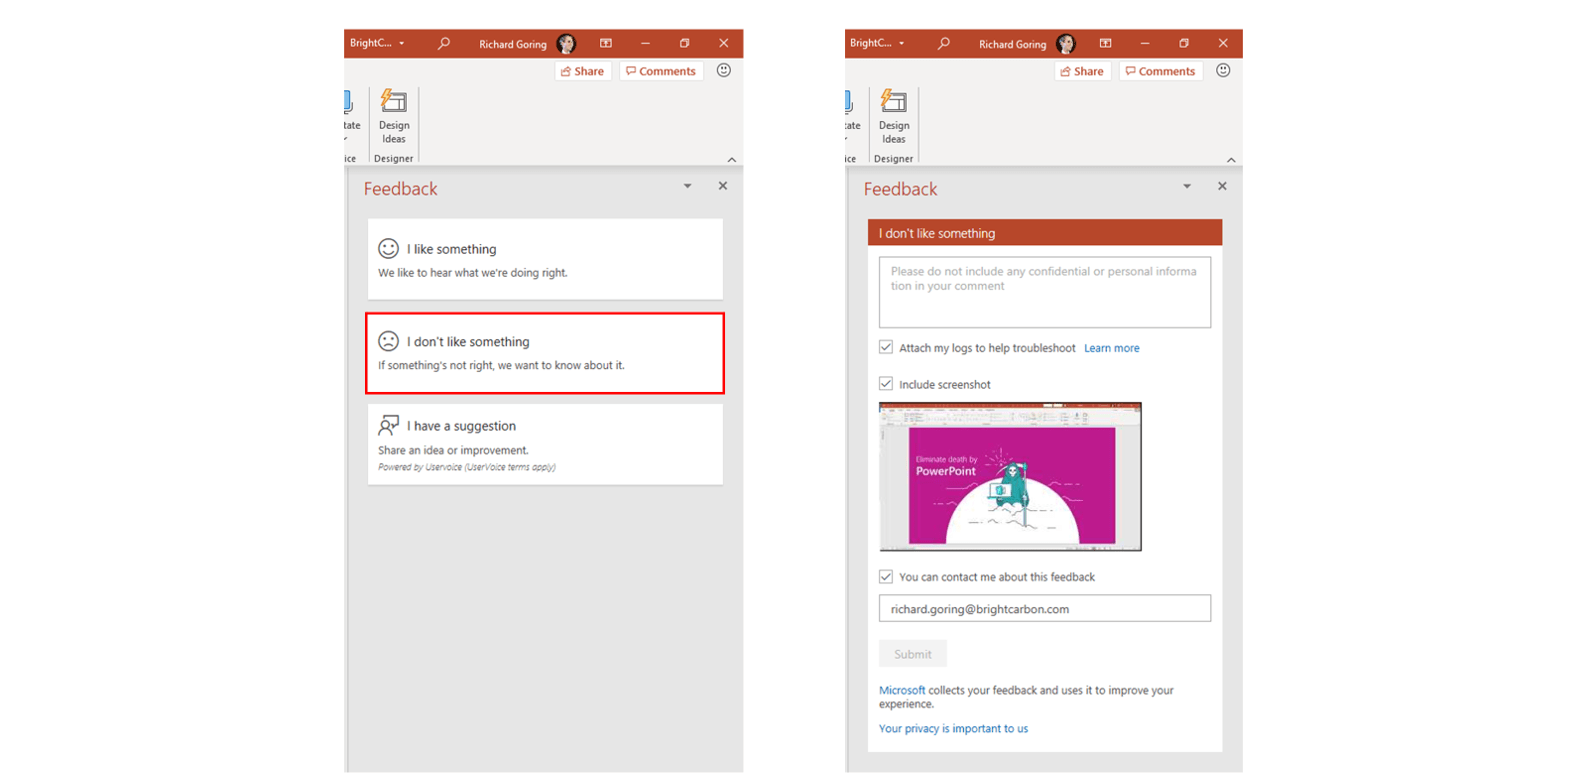 Screenshot showing where to report PowerPoint issues